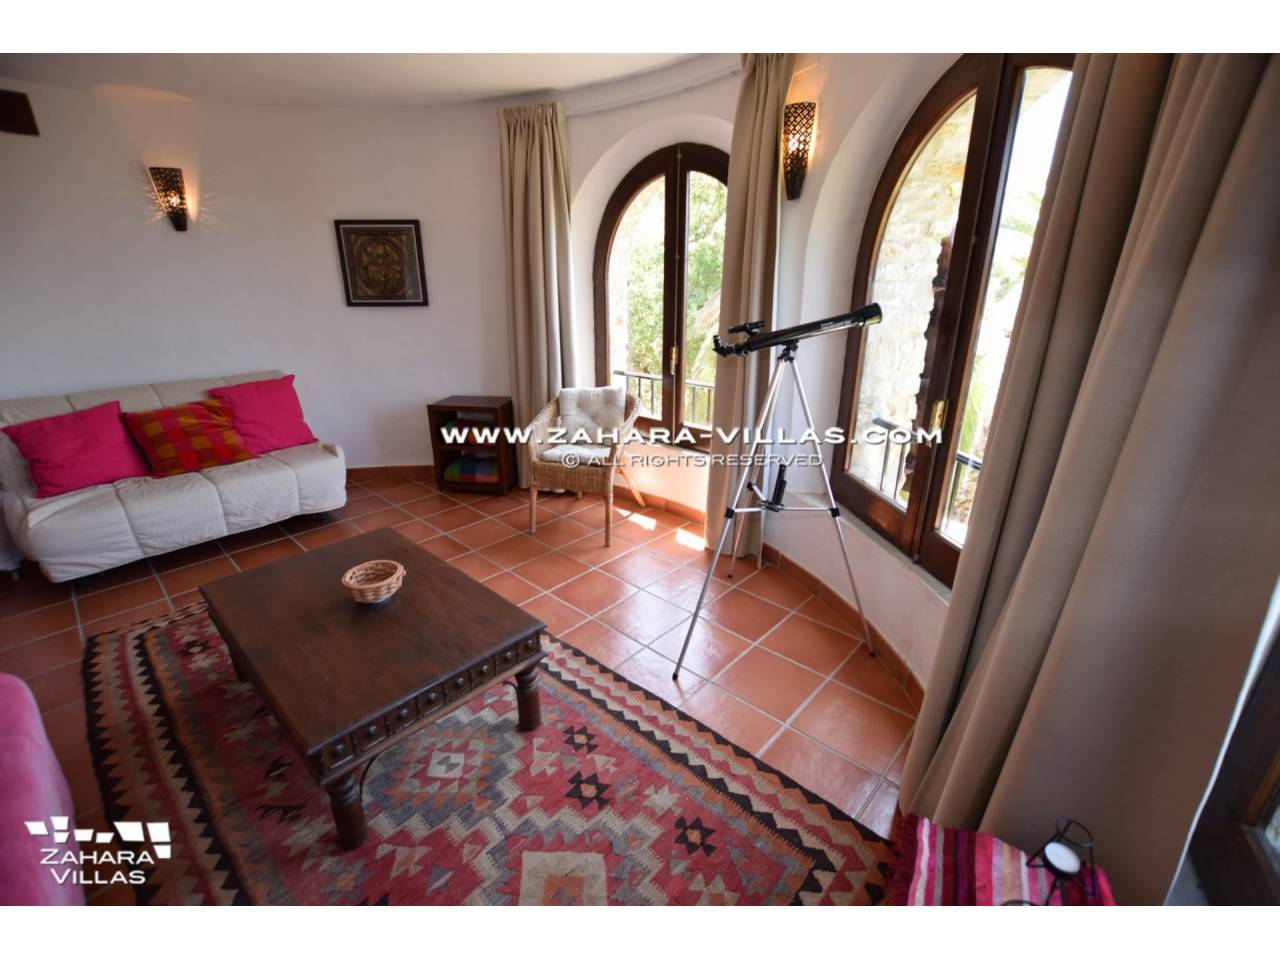 Imagen 33 de Wonderful Villa for sale in Atlanterra-Zahara de los Atunes